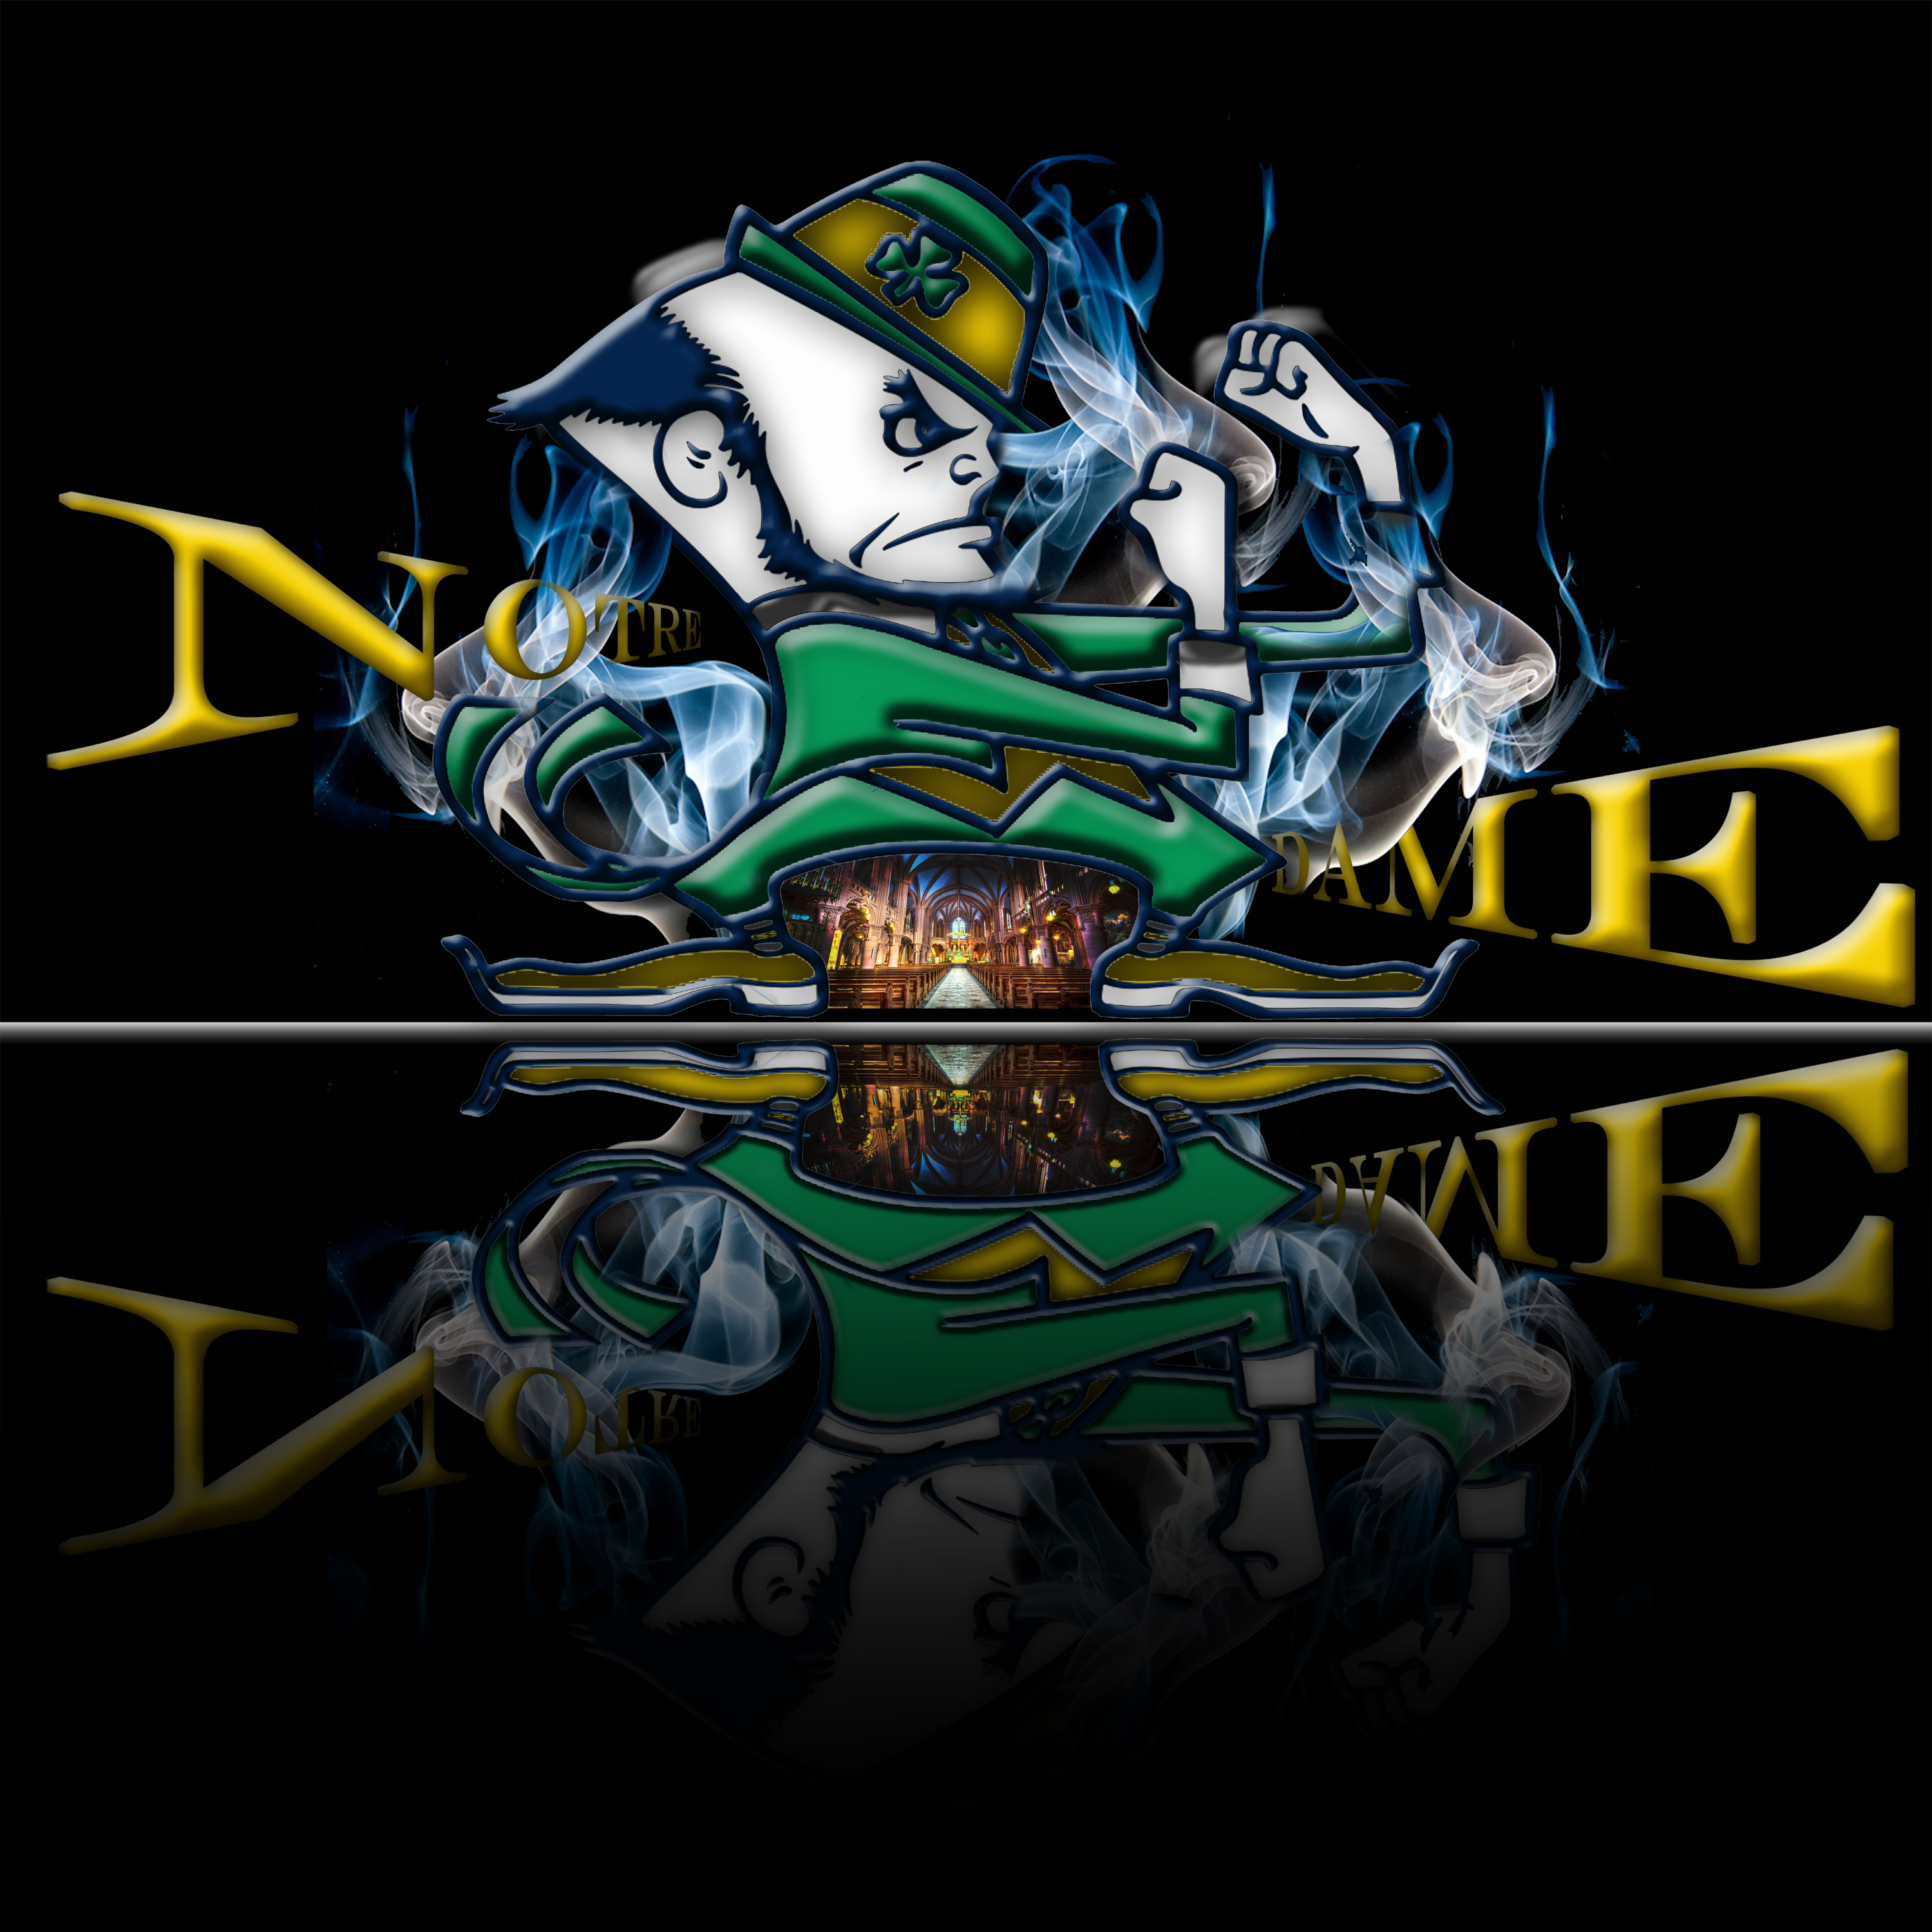 Widescreen Wallpapers of Notre Dame Cool